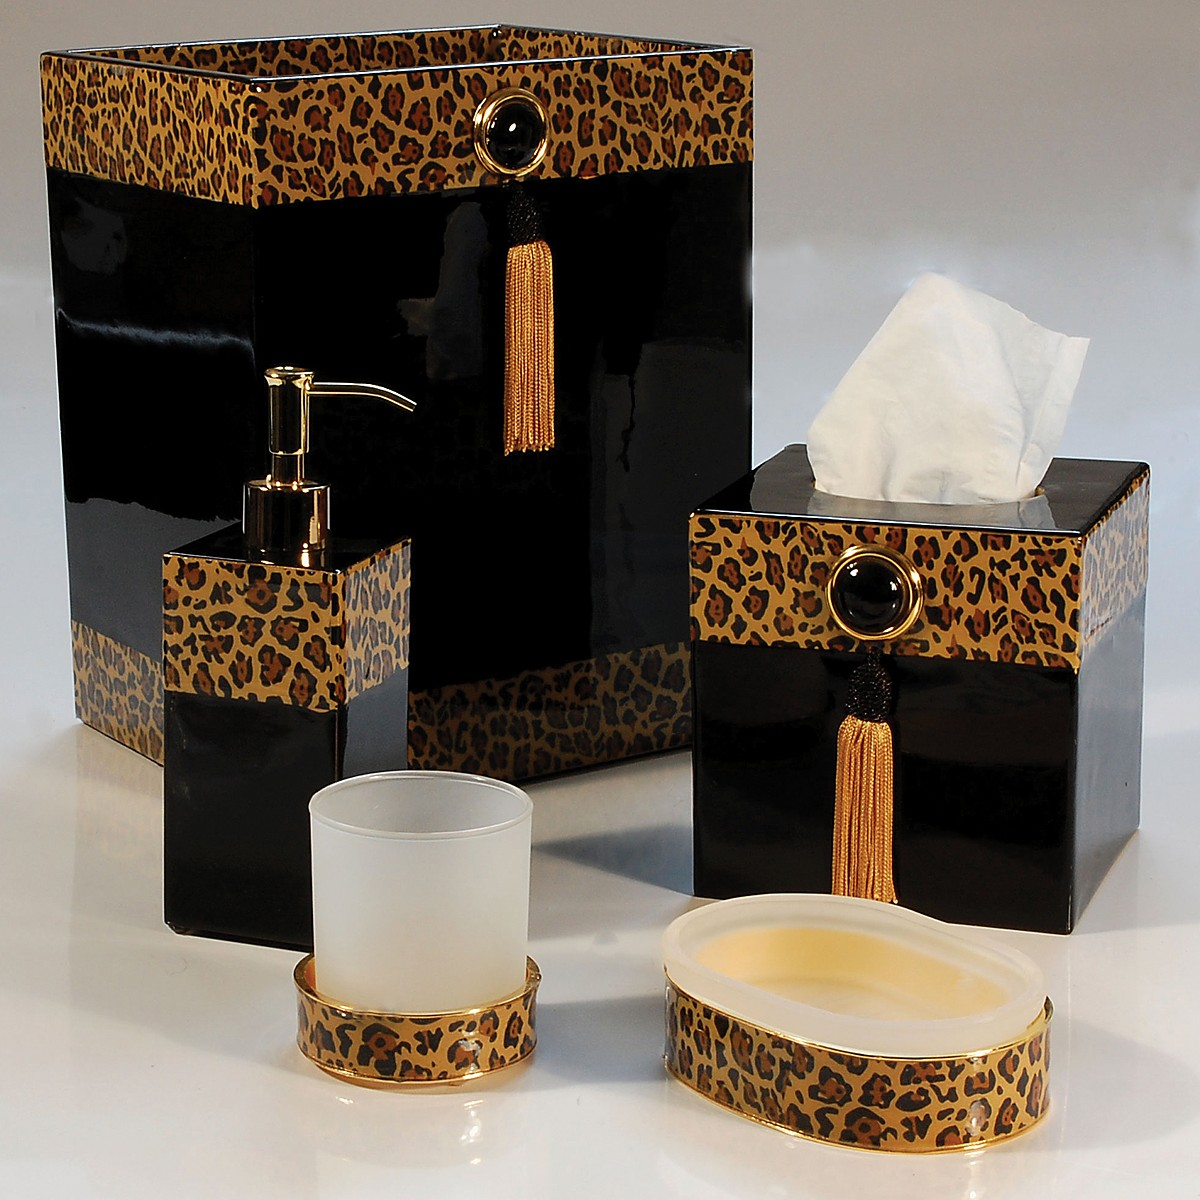 Badezimmer Set Pierre Leopard Bathroom Decor Bathroom Decorations Animal